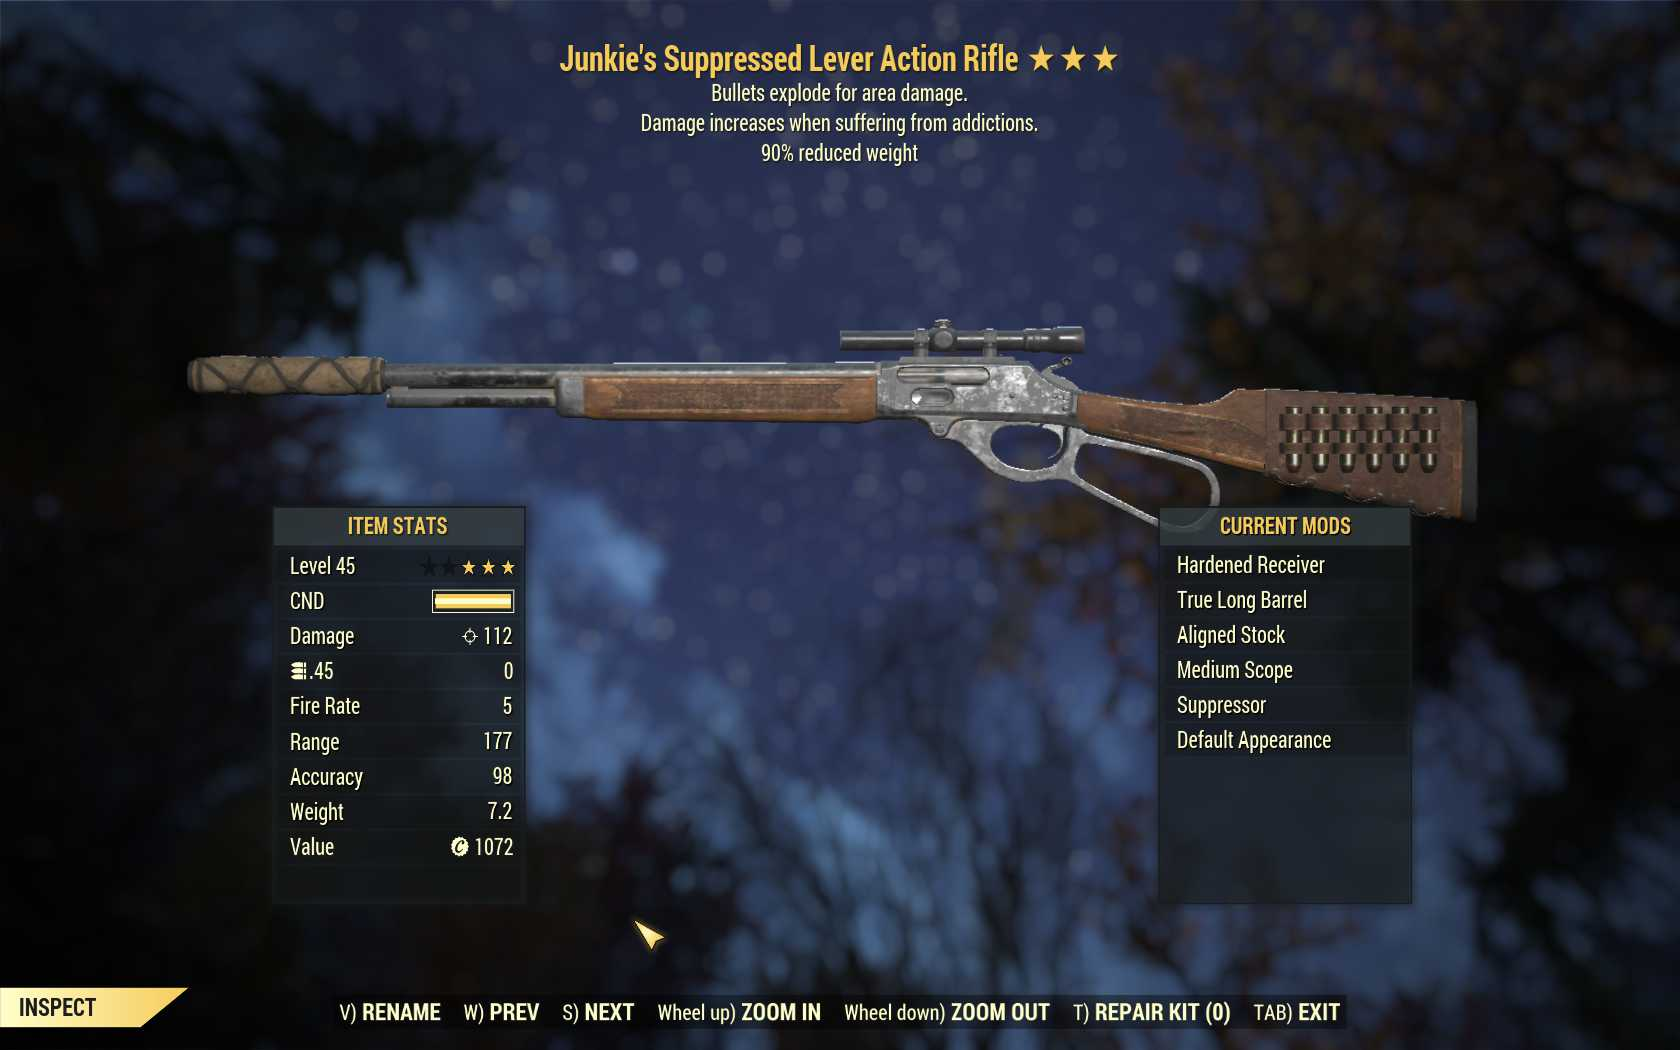 Junkie's Explosive Lever Action Rifle (90% reduced weight)